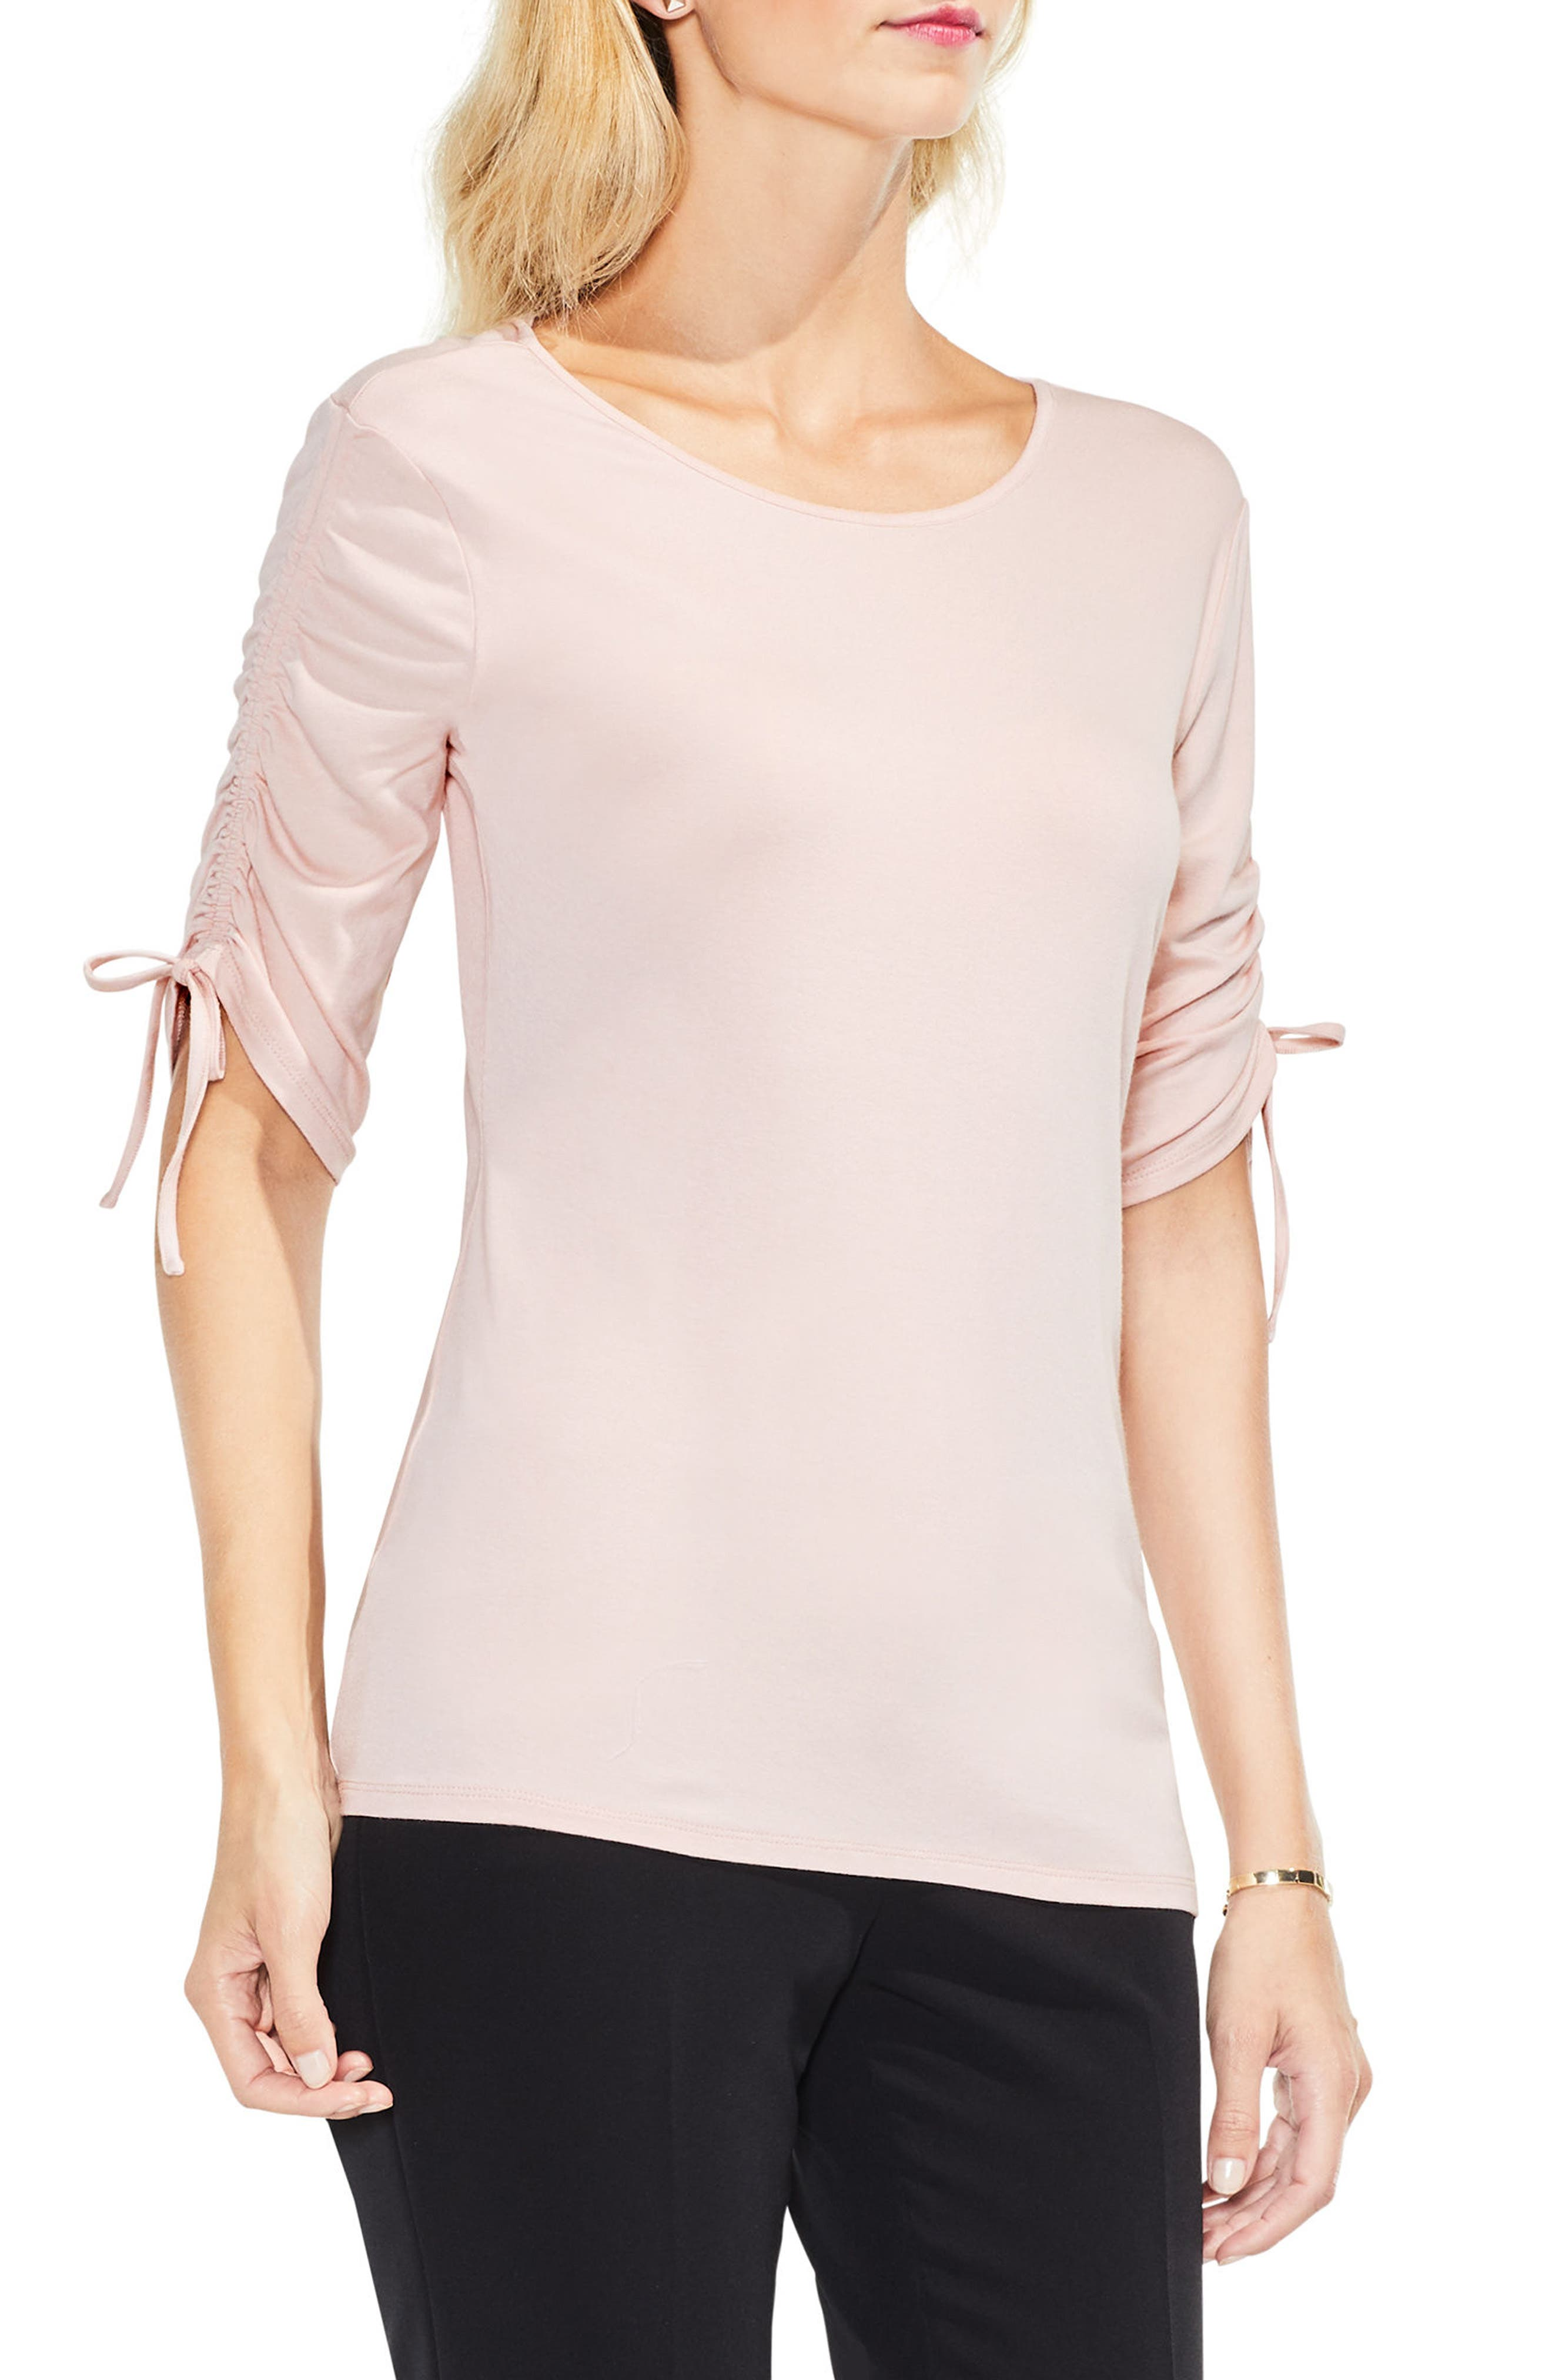 Alternate Image 1 Selected - Vince Camuto Ruched Elbow Sleeve Top (Regular & Petite)